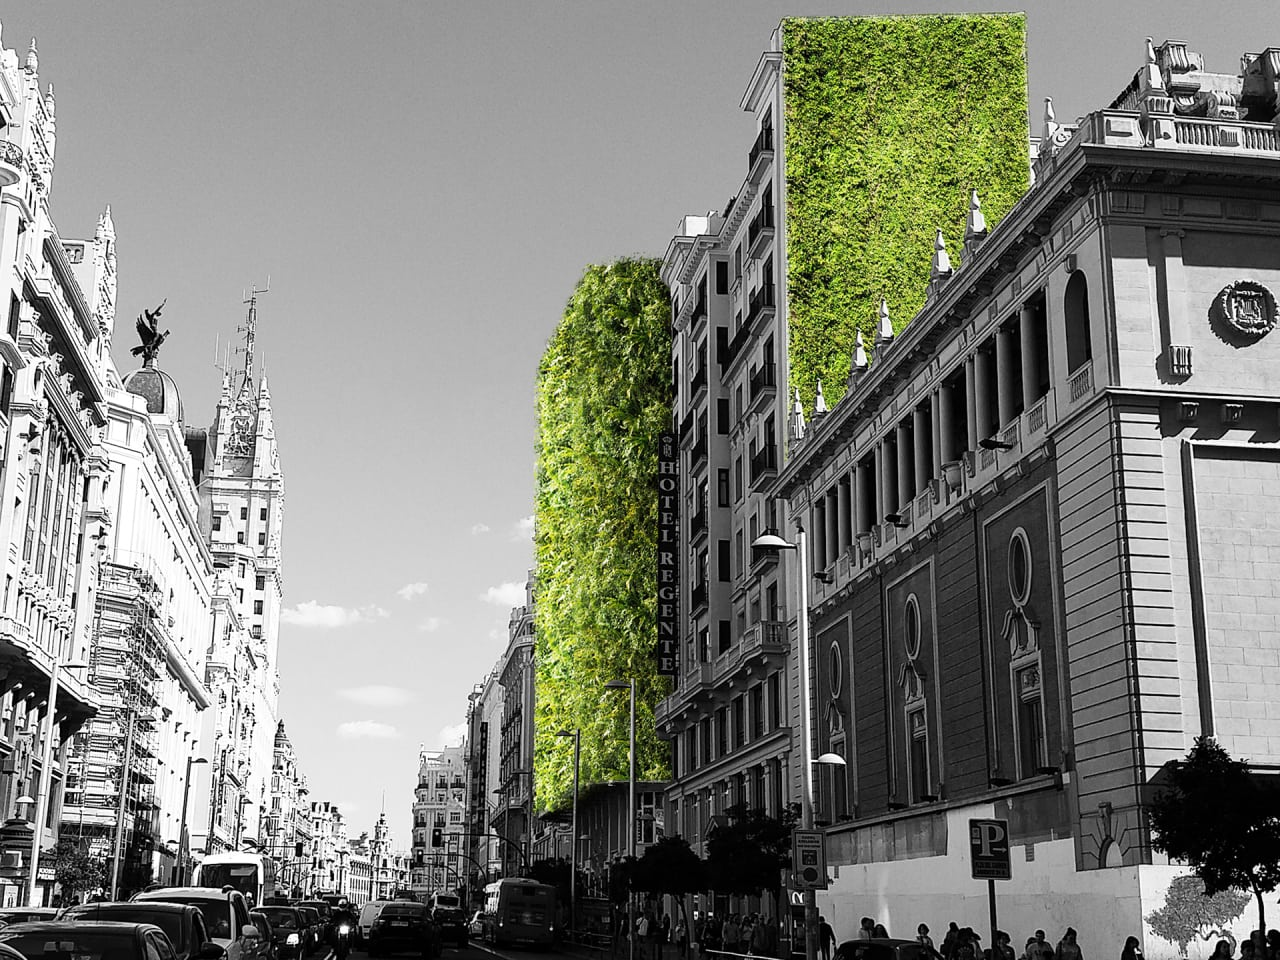 Madrid Is Covering Itself In Plants To Help Fight Rising Temperatures